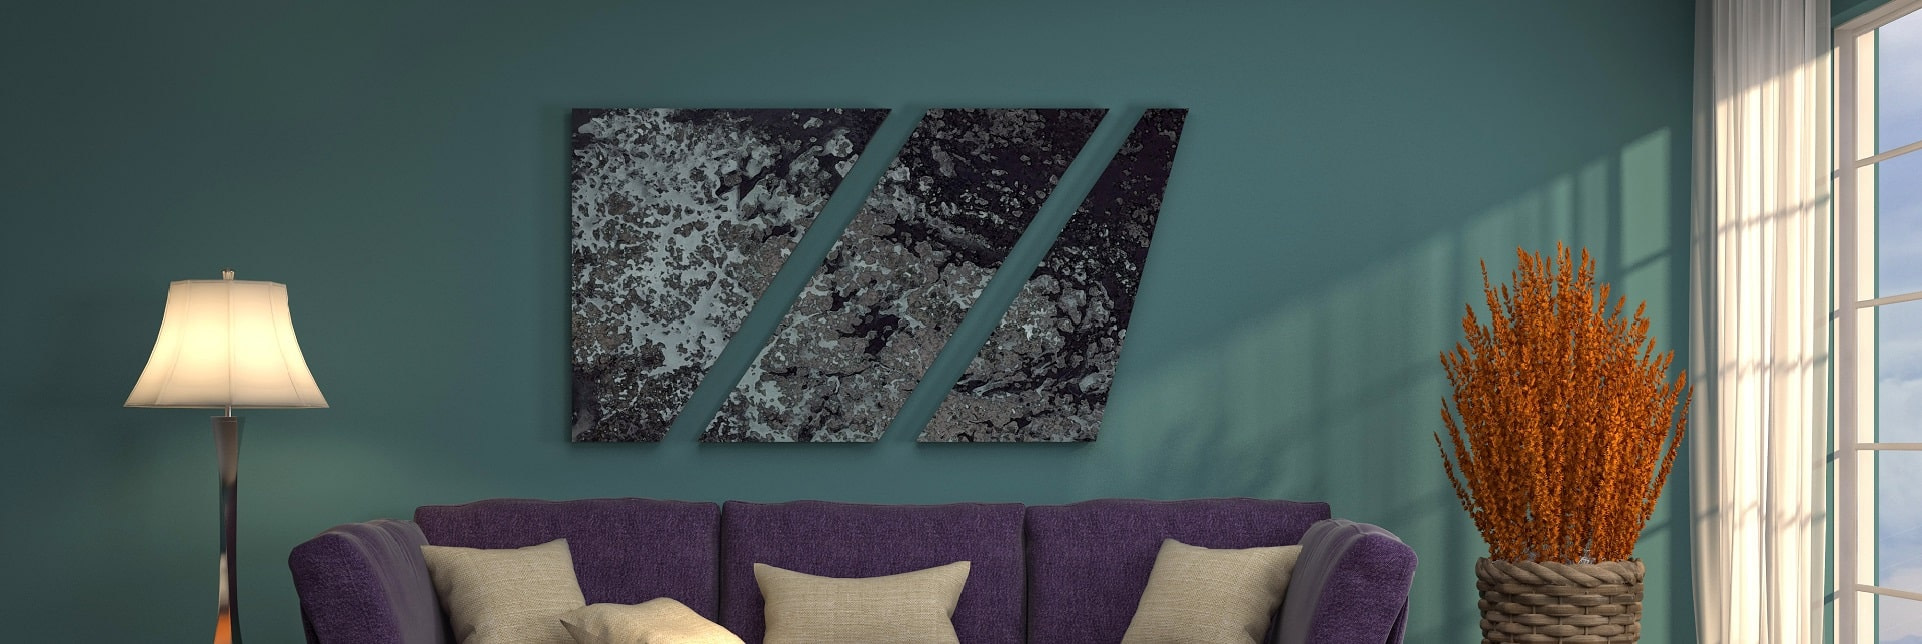 Custom Shaped Stretched Canvas Services for Interior Designers